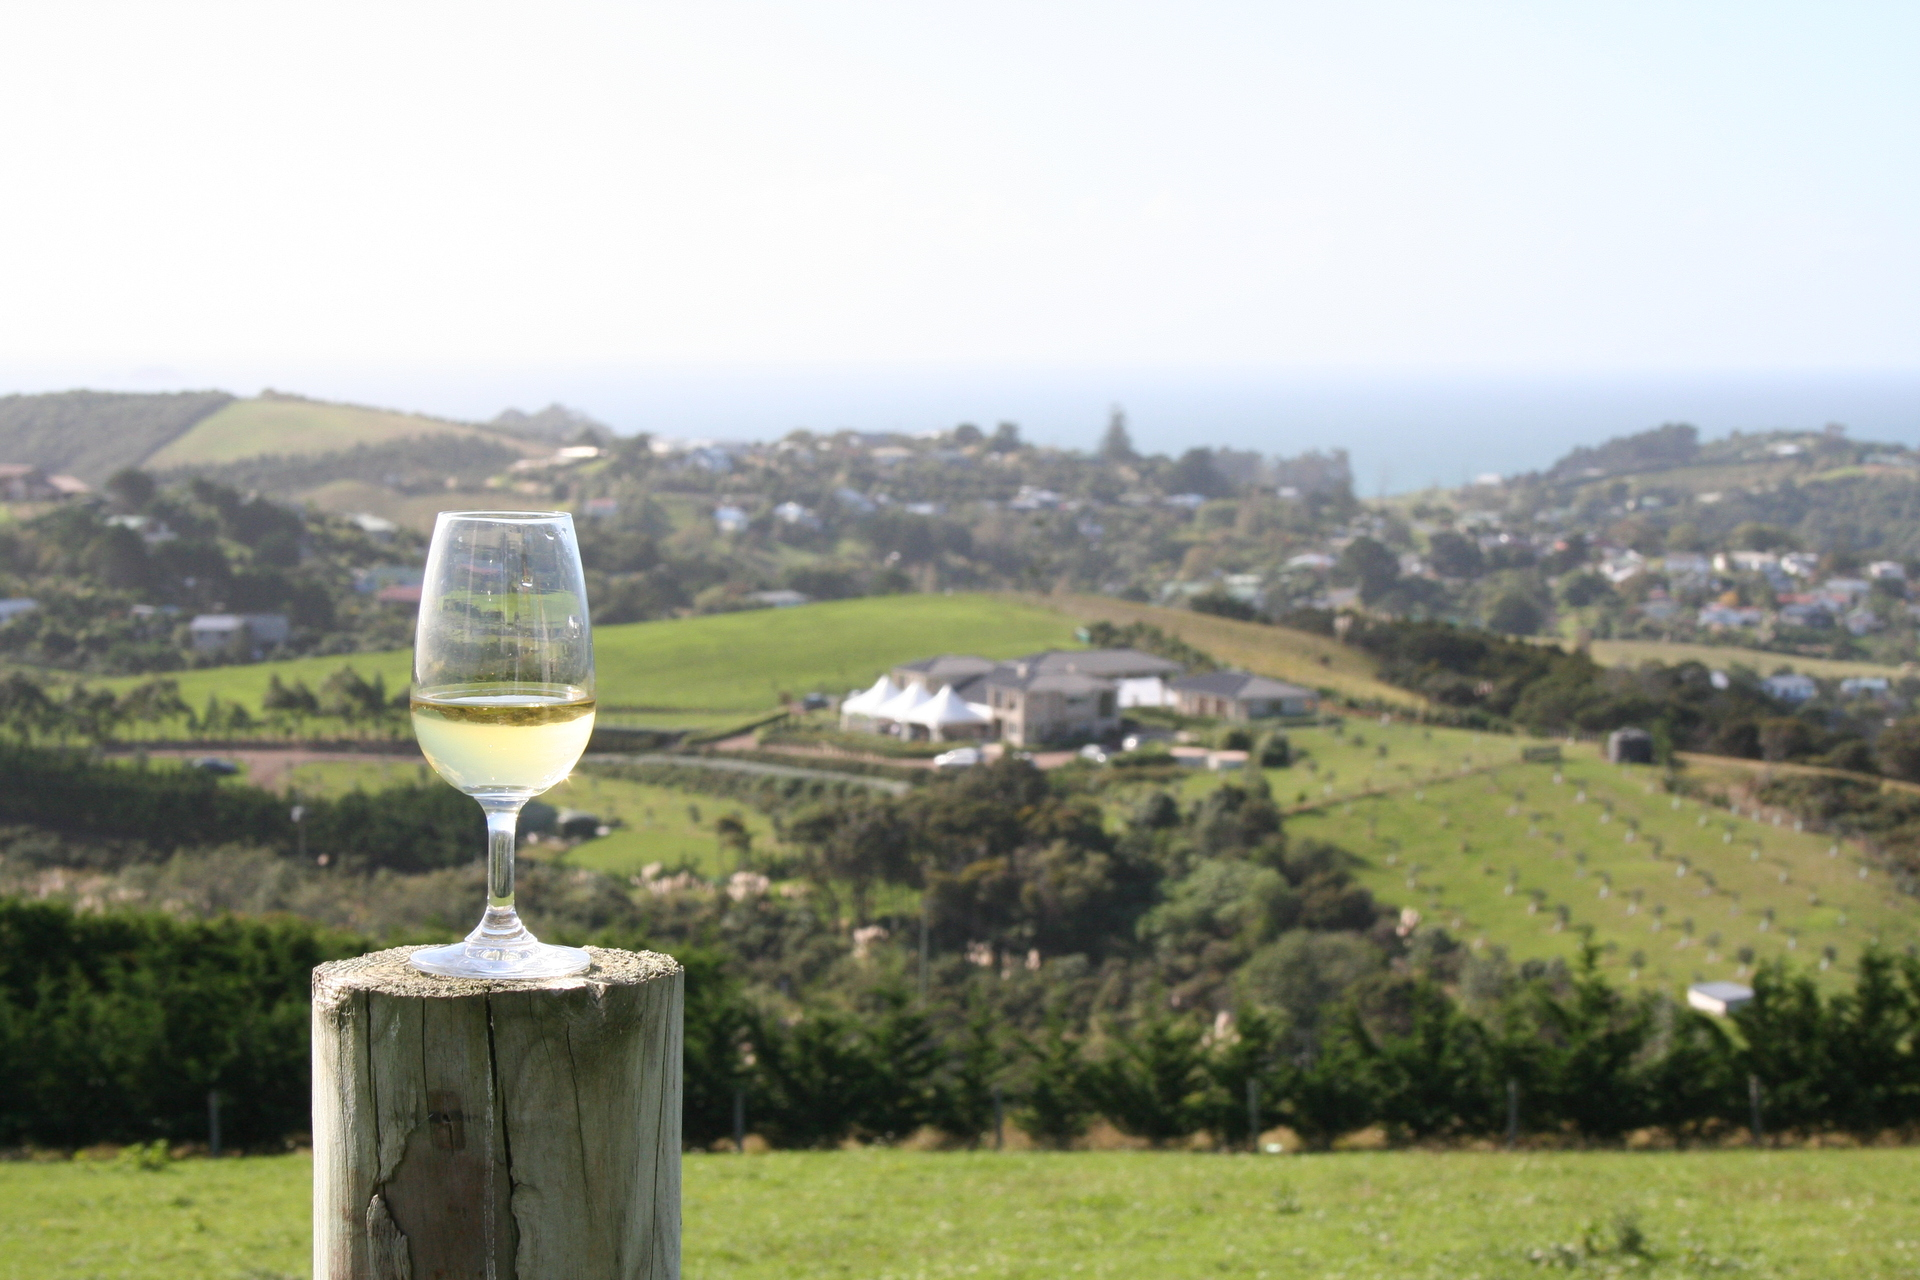 white-wine-with-a-view-1322142-1920x1280